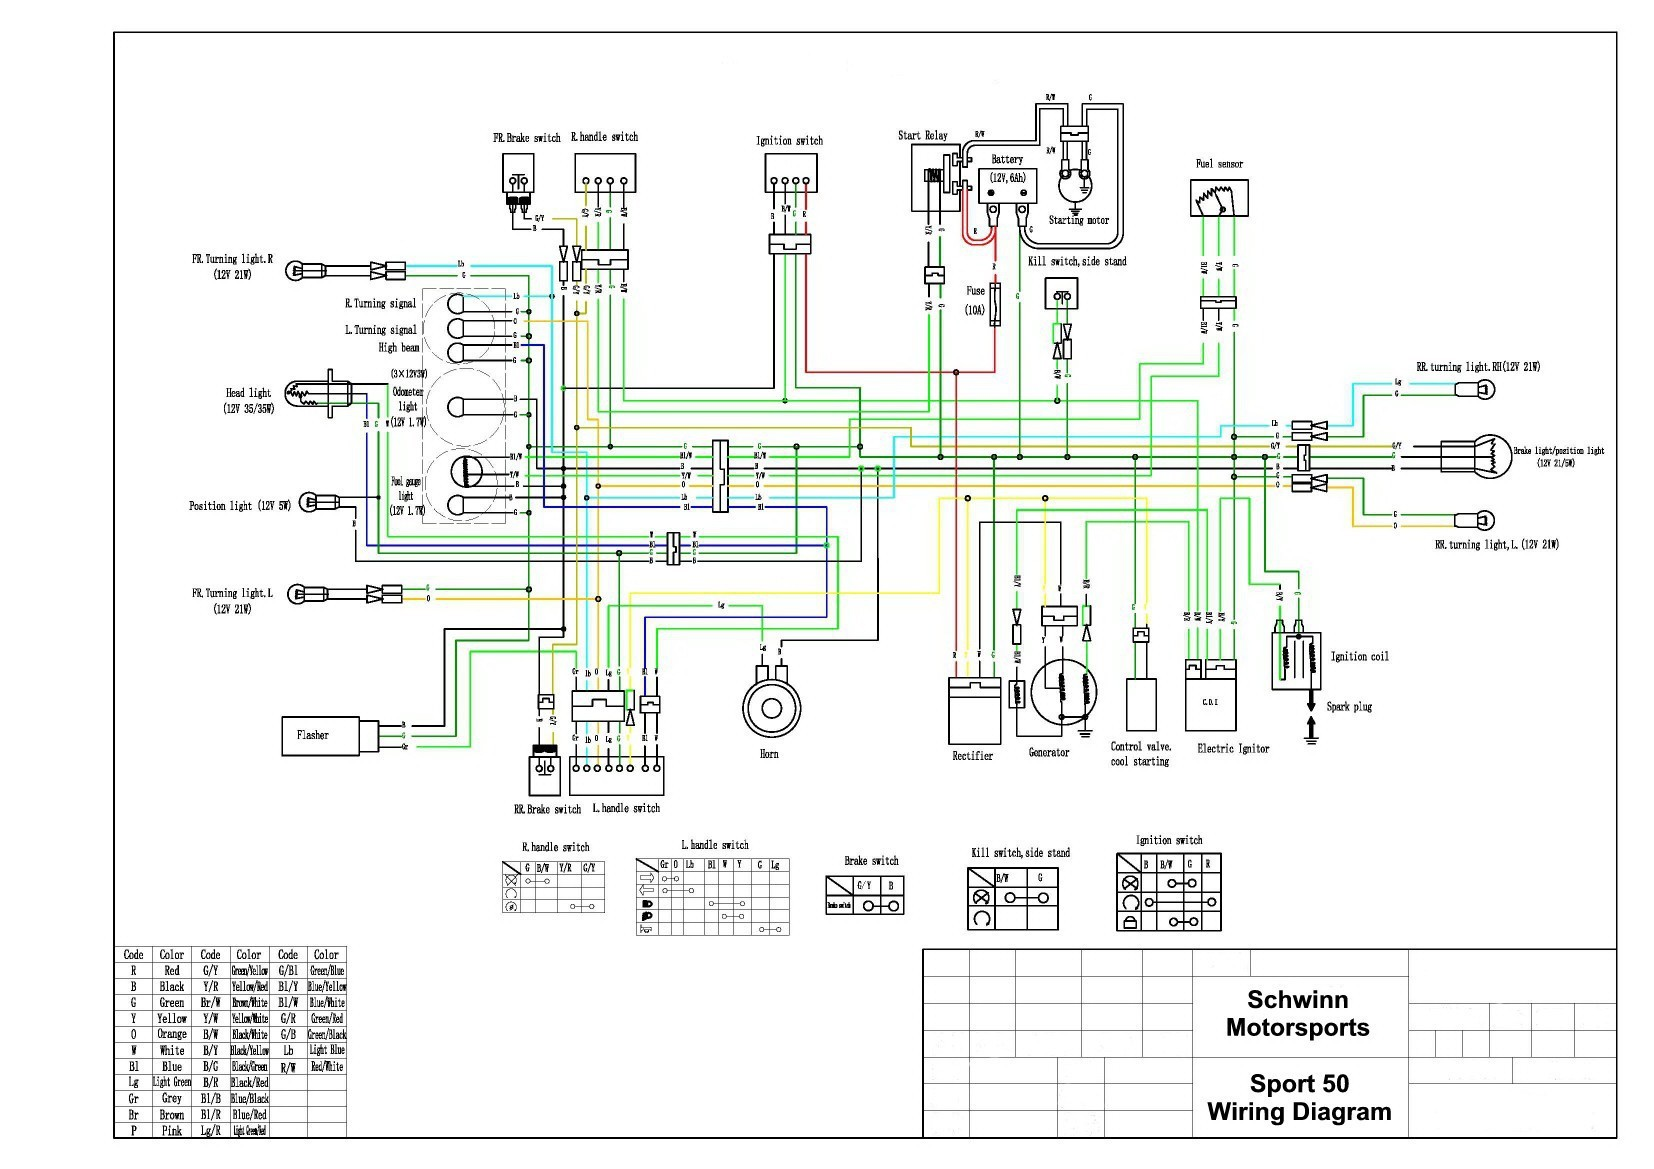 Pride Mobility Scooter Wiring Diagram Power Wheels Wiring for Hd Detailed Schematic Diagrams Of Pride Mobility Scooter Wiring Diagram